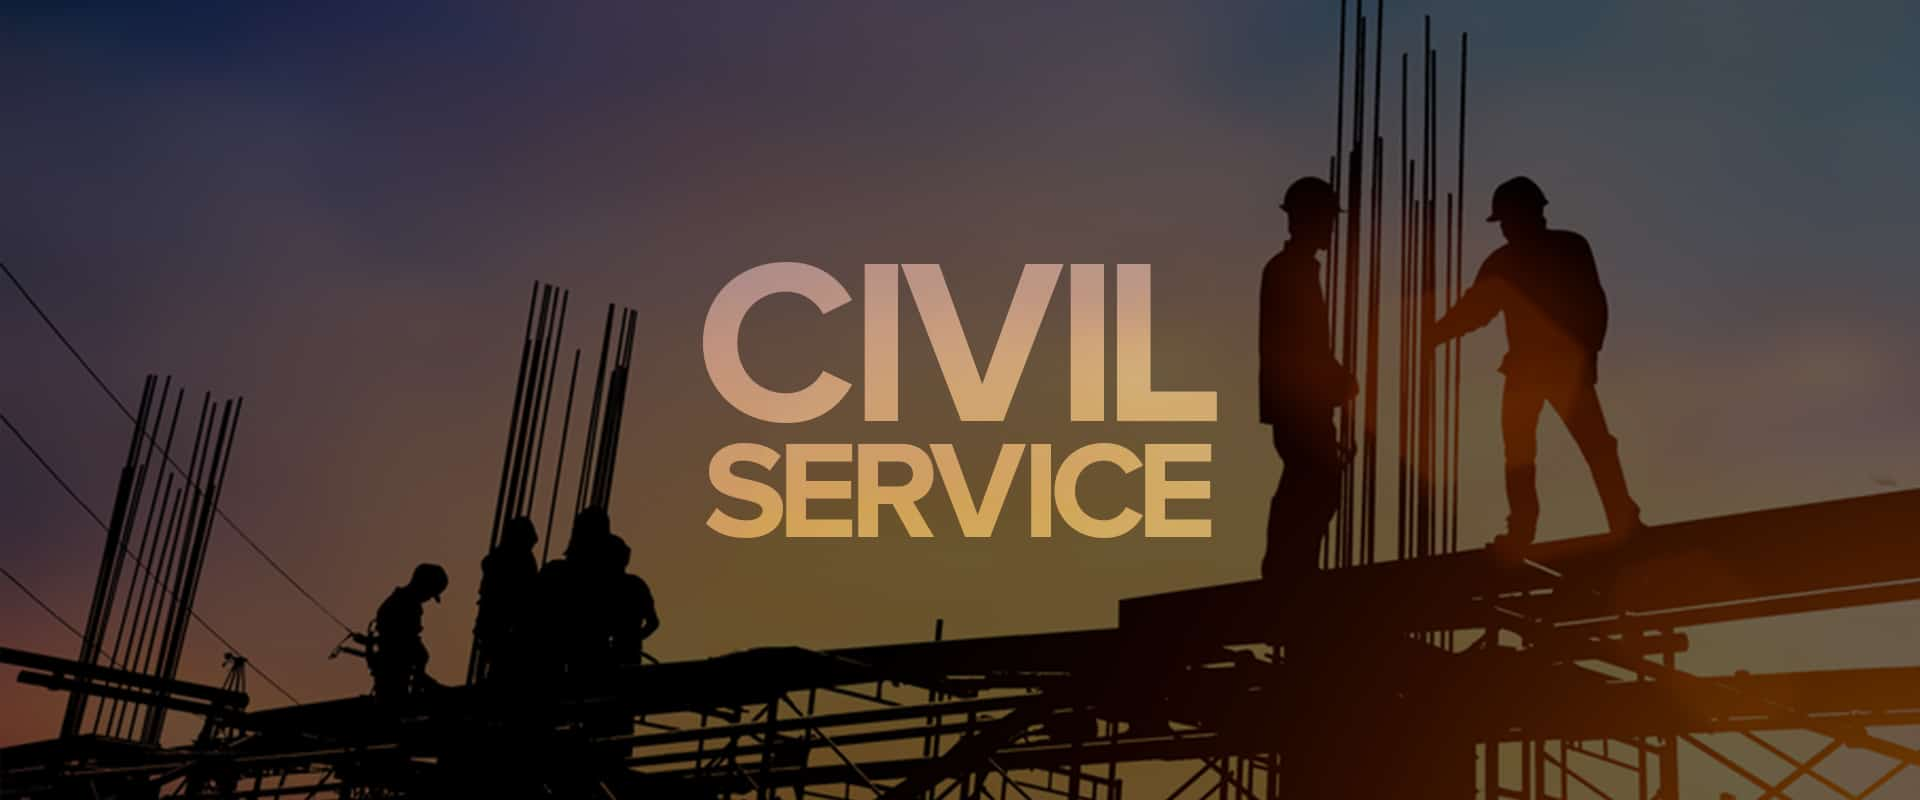 civil-service-viratmep